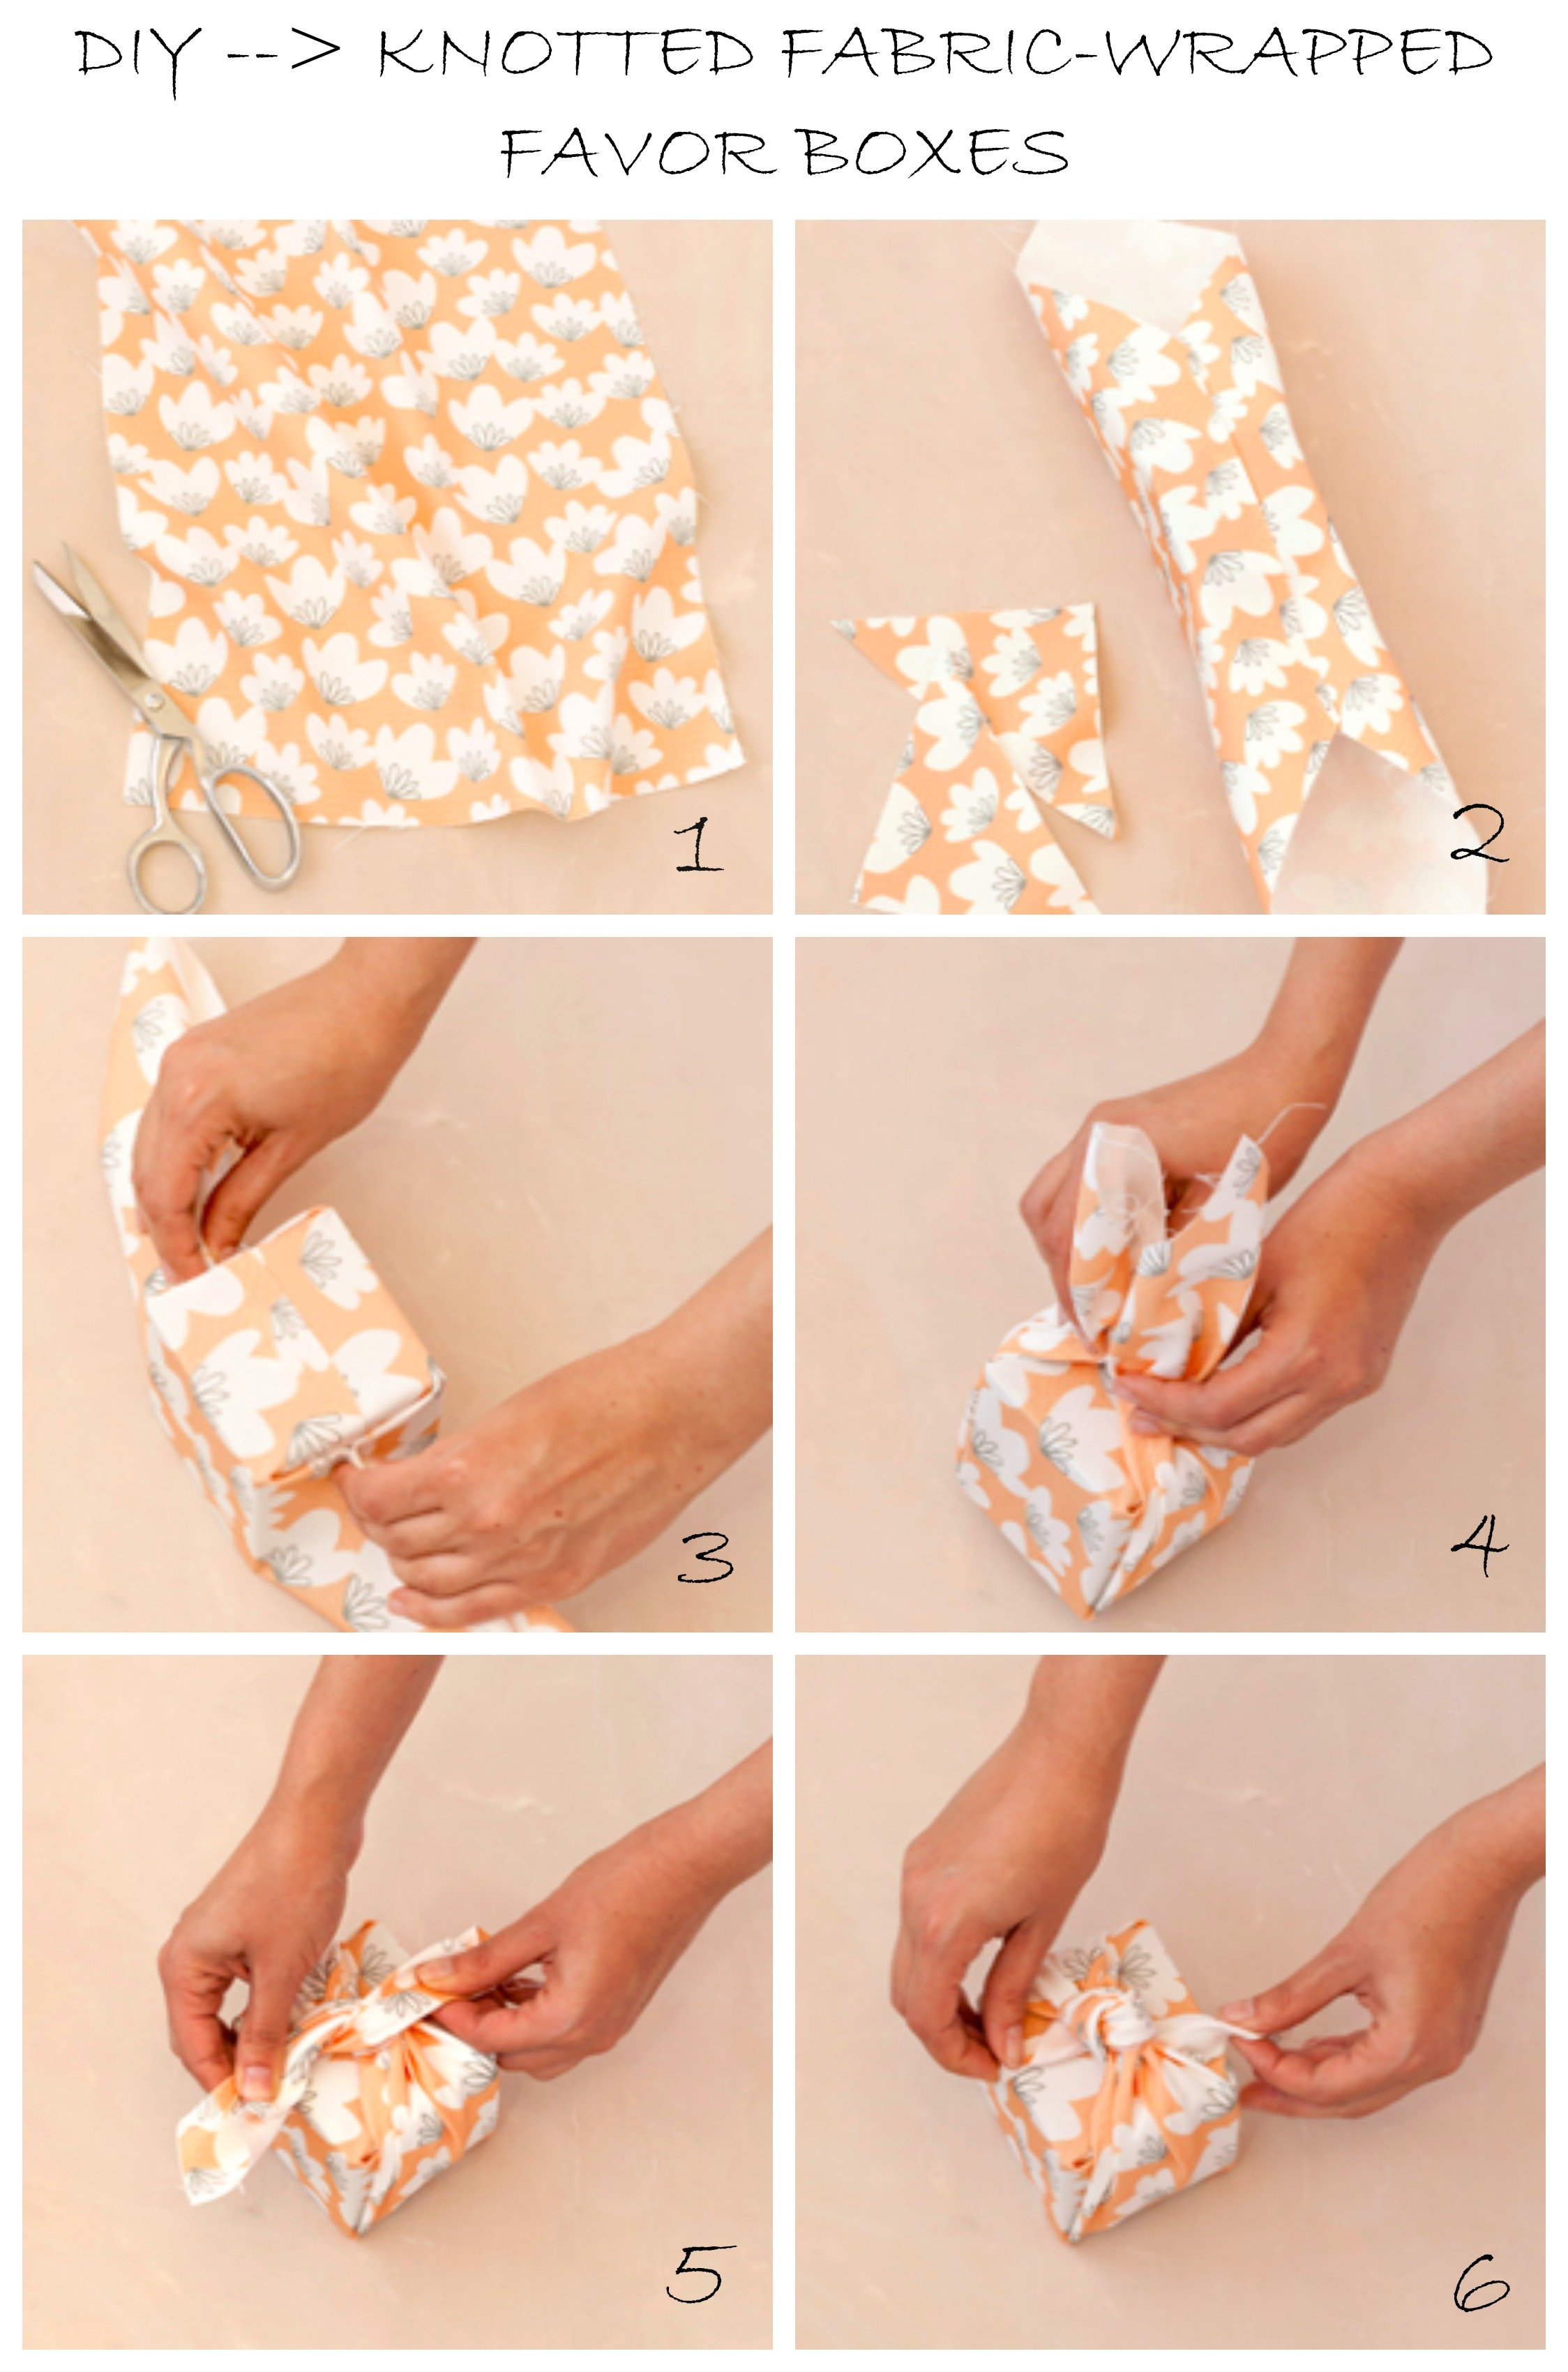 DIY KNOTTED FABRIC-WRAPPED FAVOR BOXES